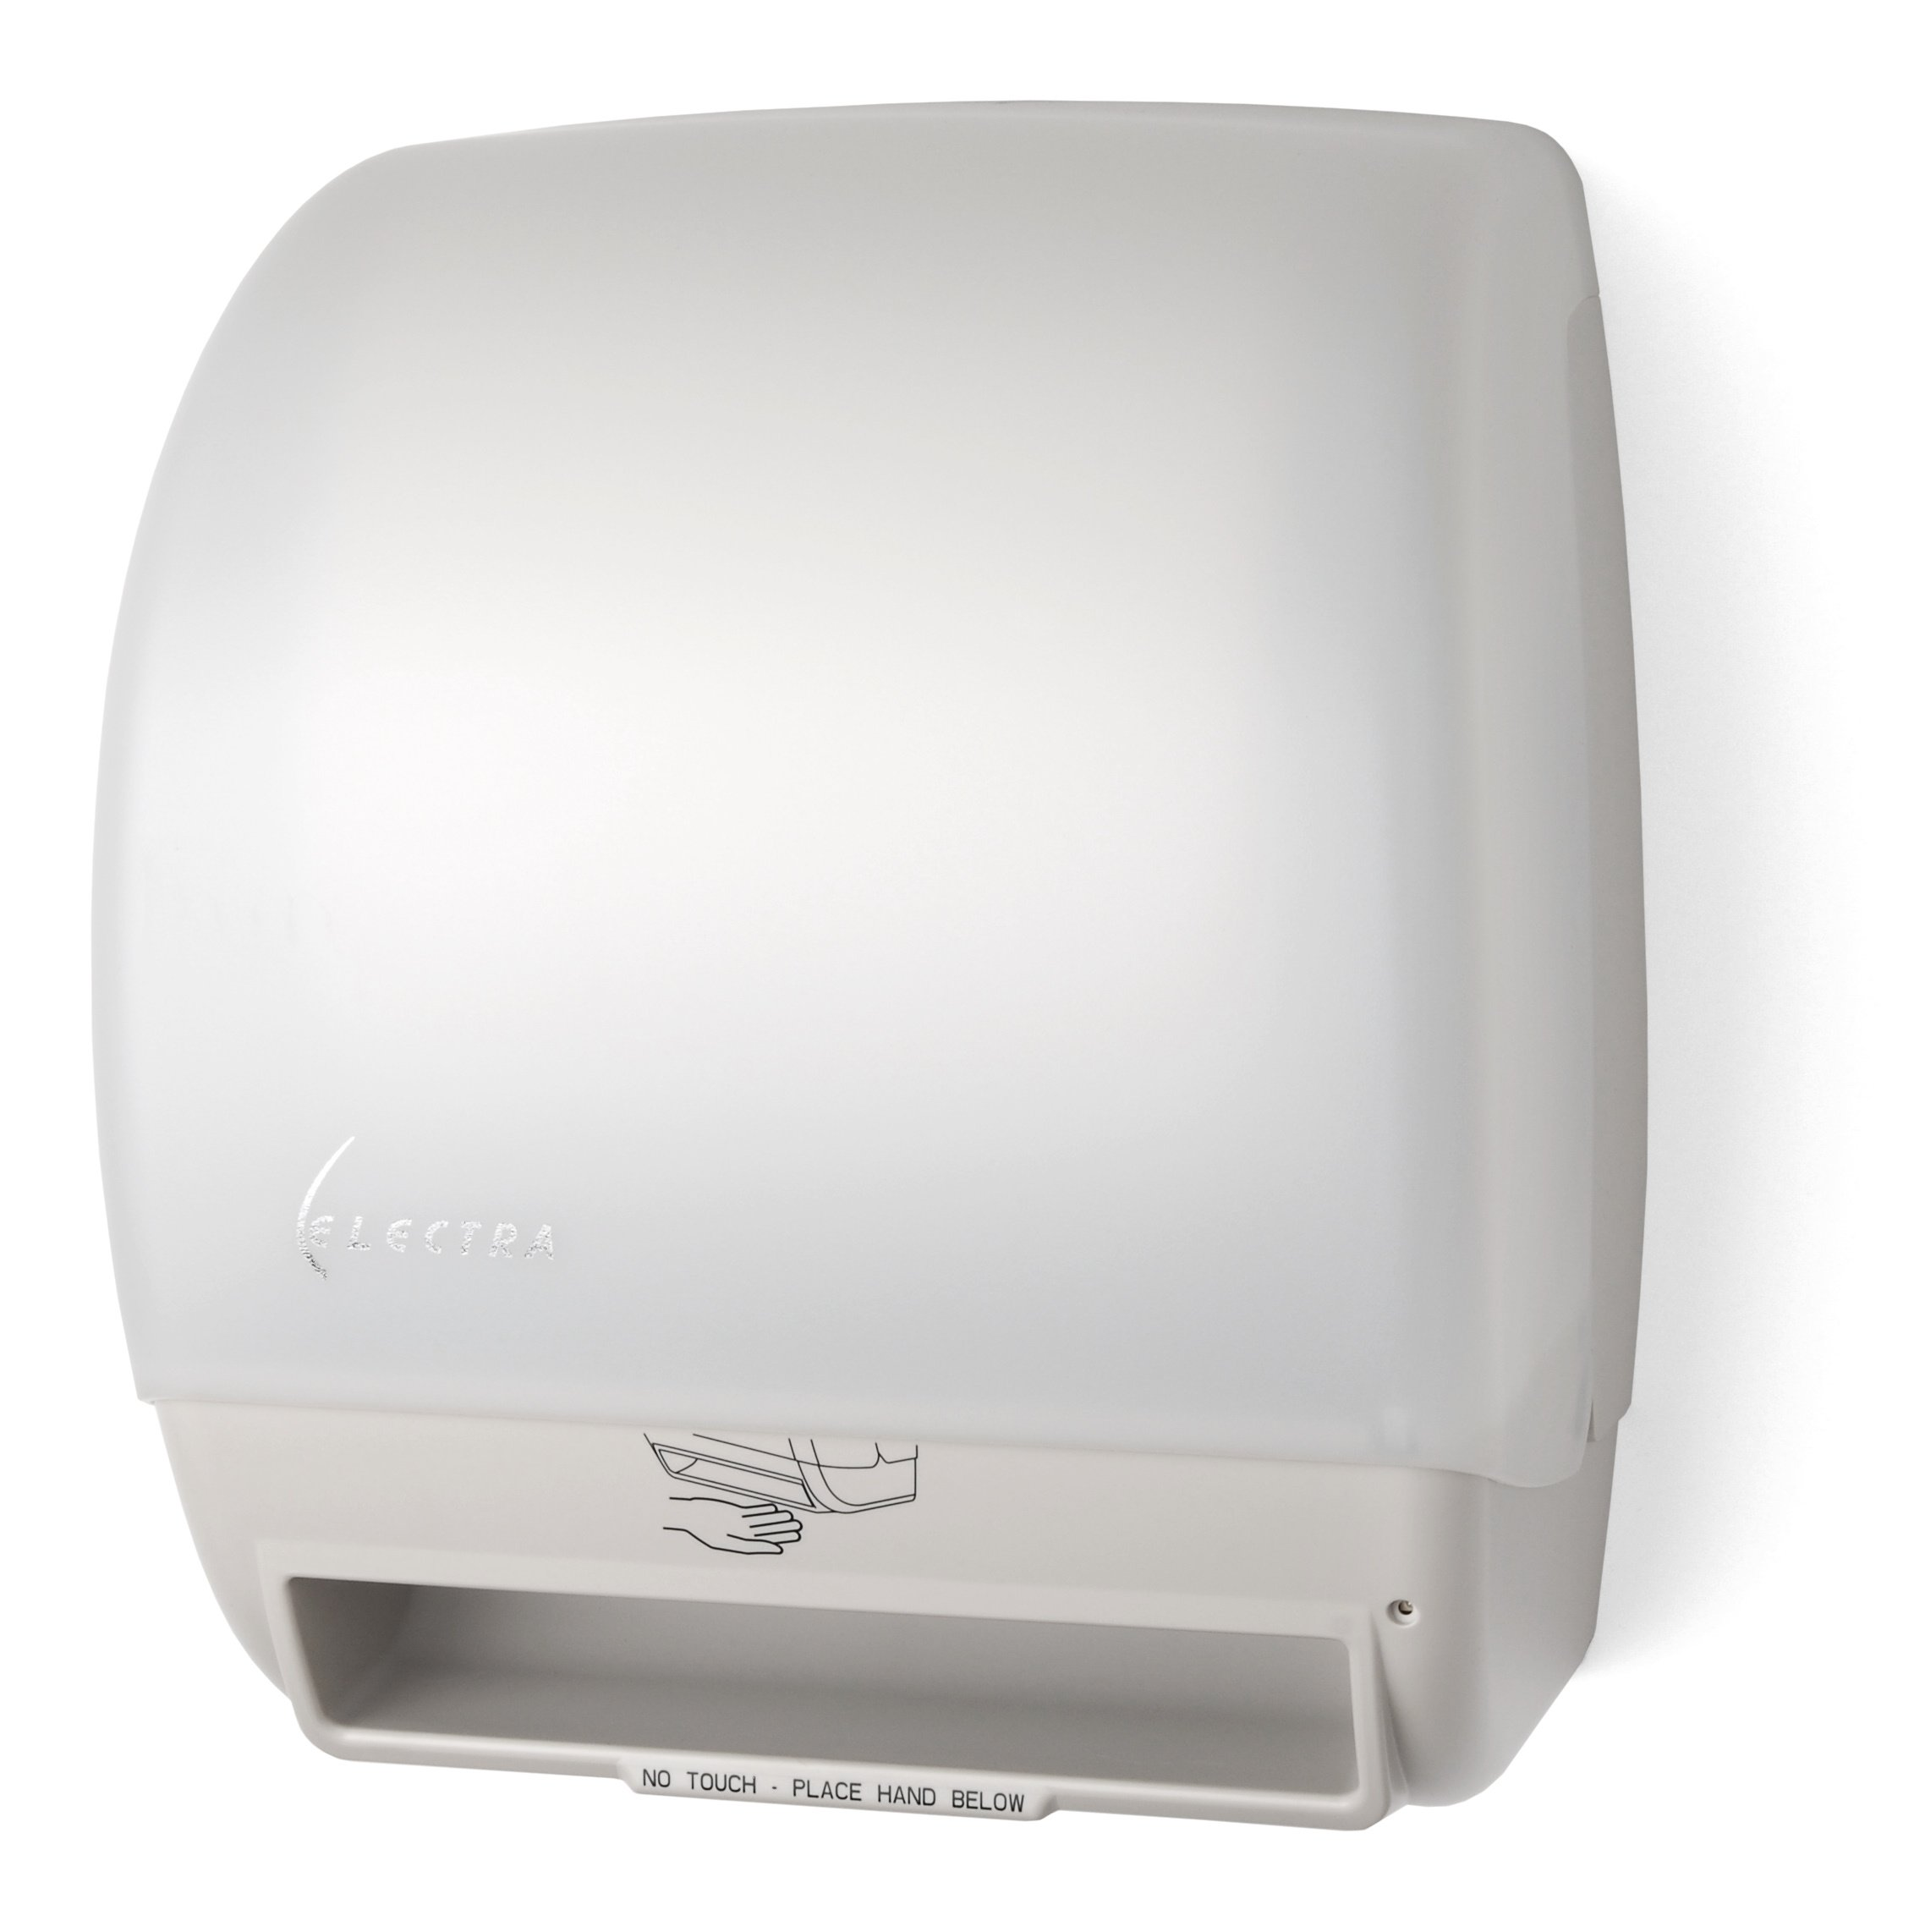 Palmer Fixture TD0245-03P Electra Touchless Roll Towel Dispenser, White Translucent by Palmer Fixture